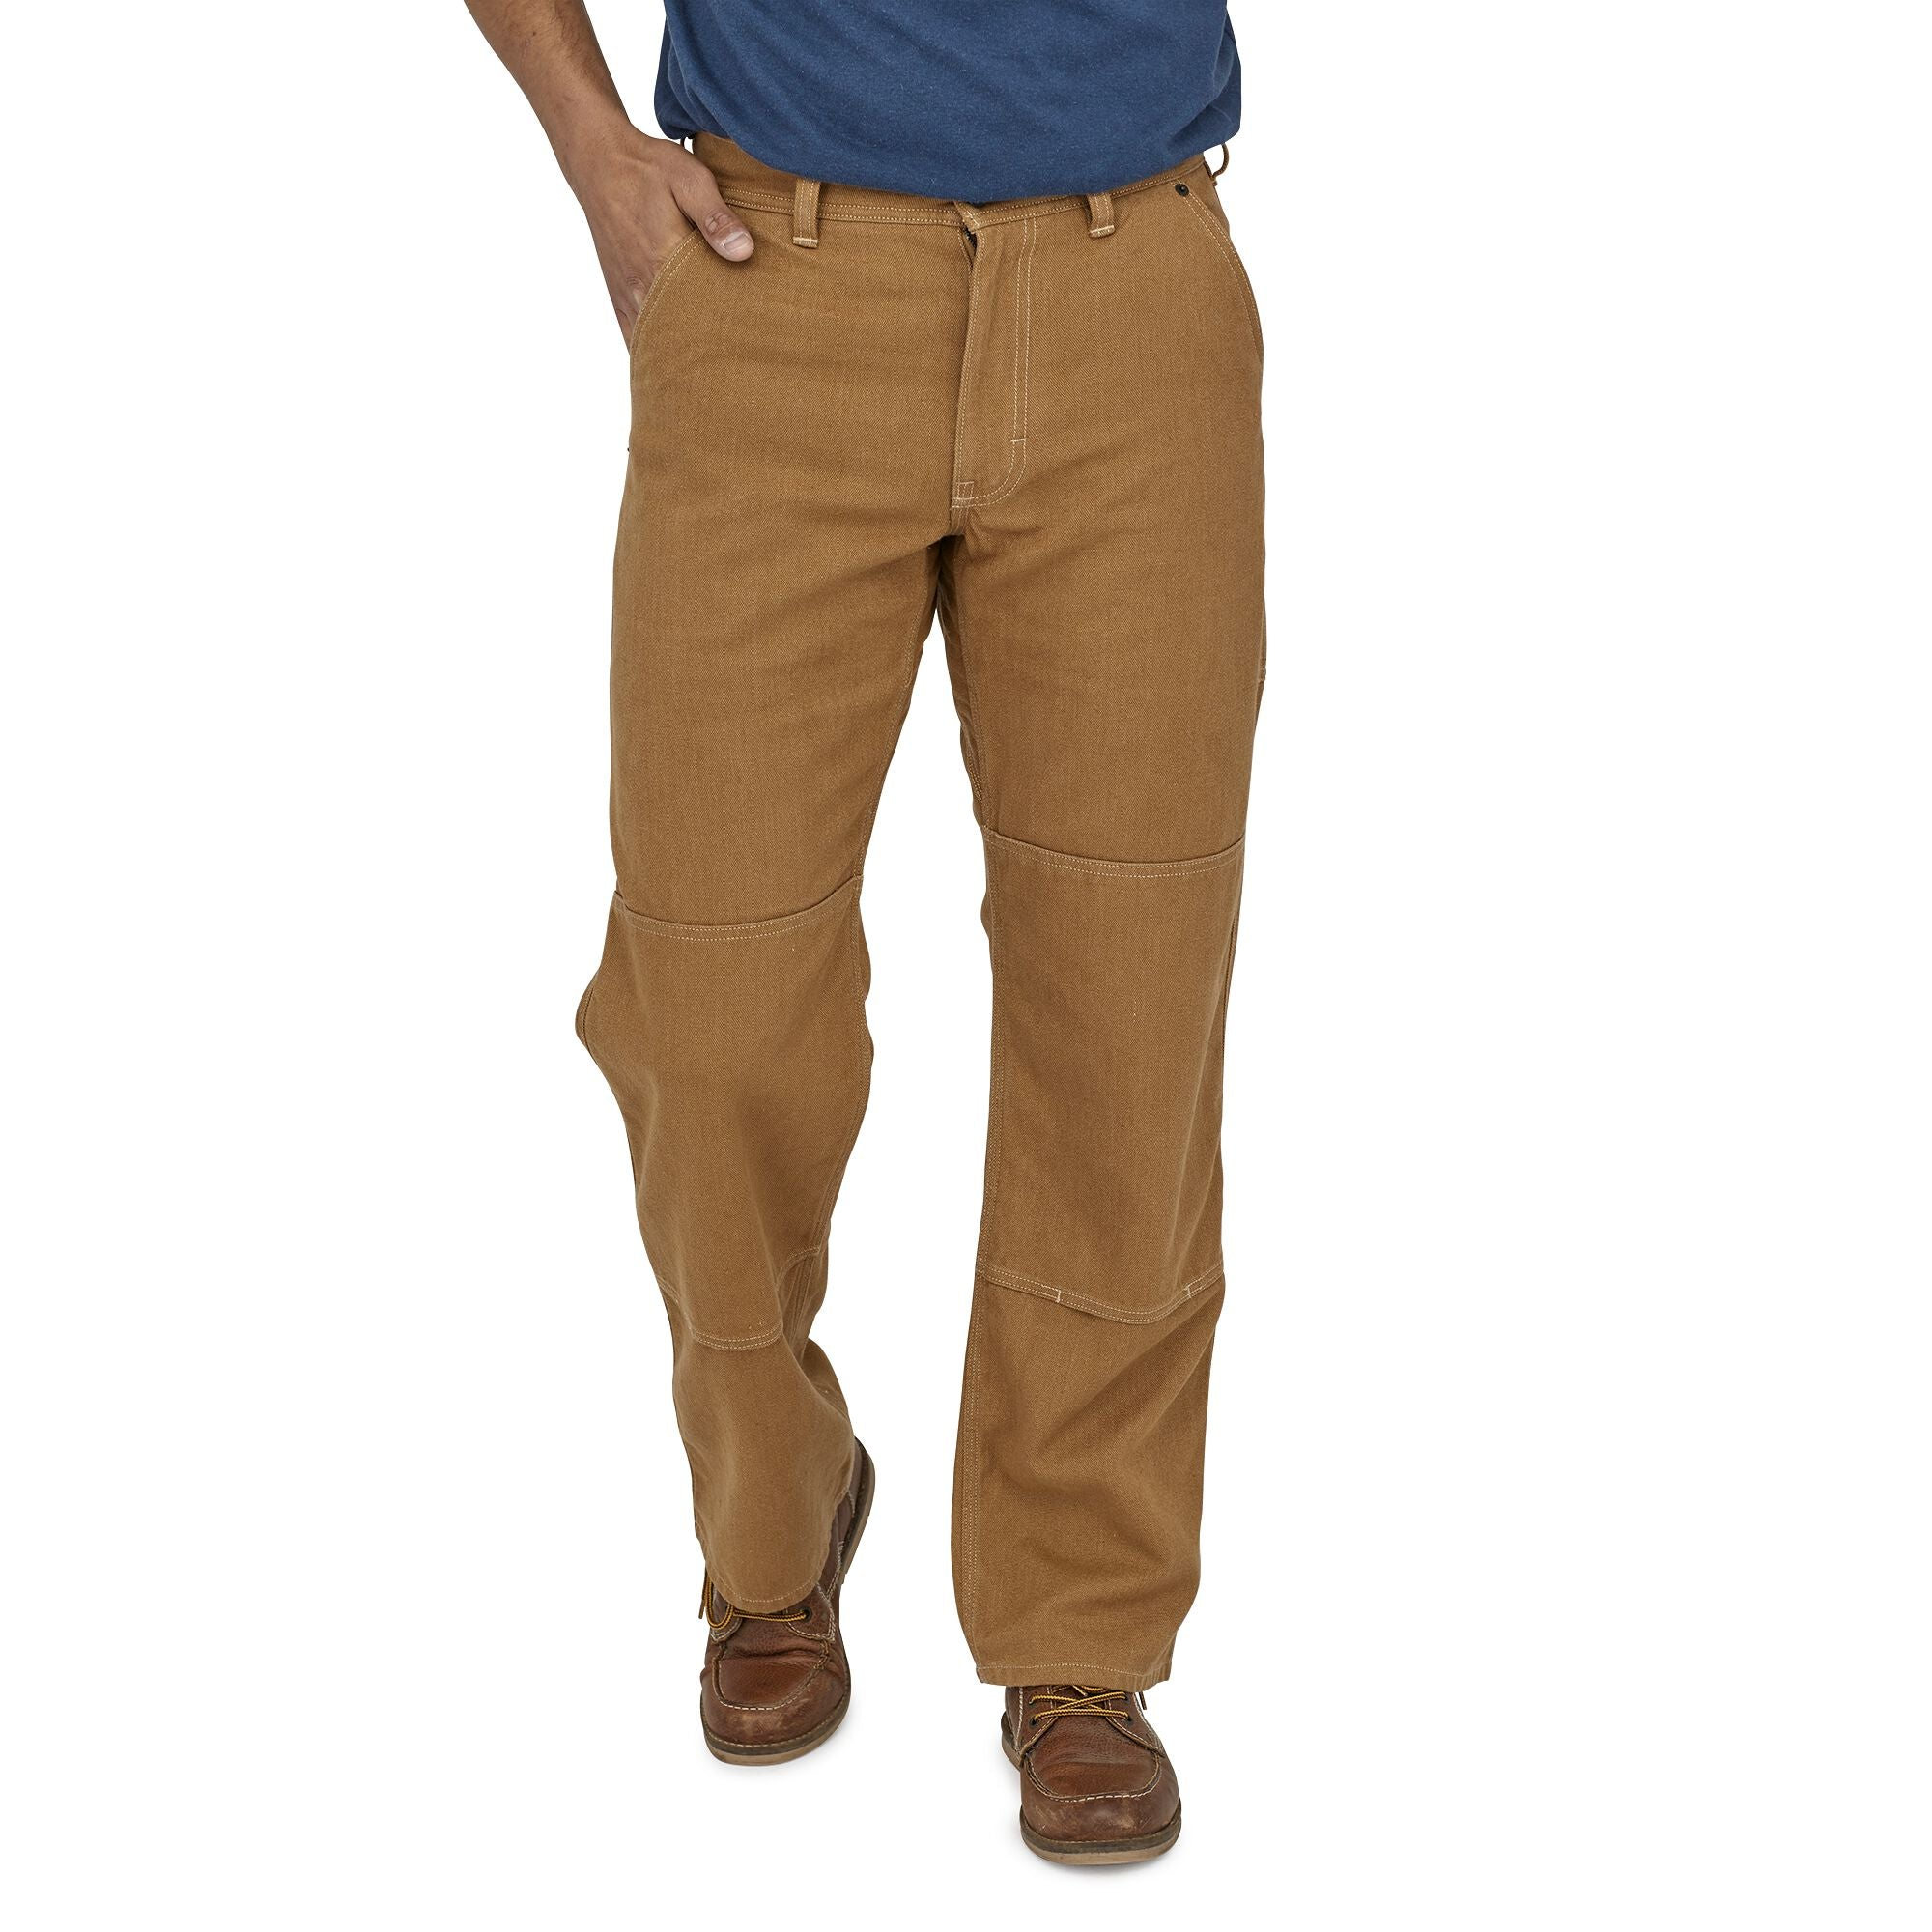 Pantalón Hombre Iron Forge Hemp® Canvas Double Knee - Regular Cafe Patagonia